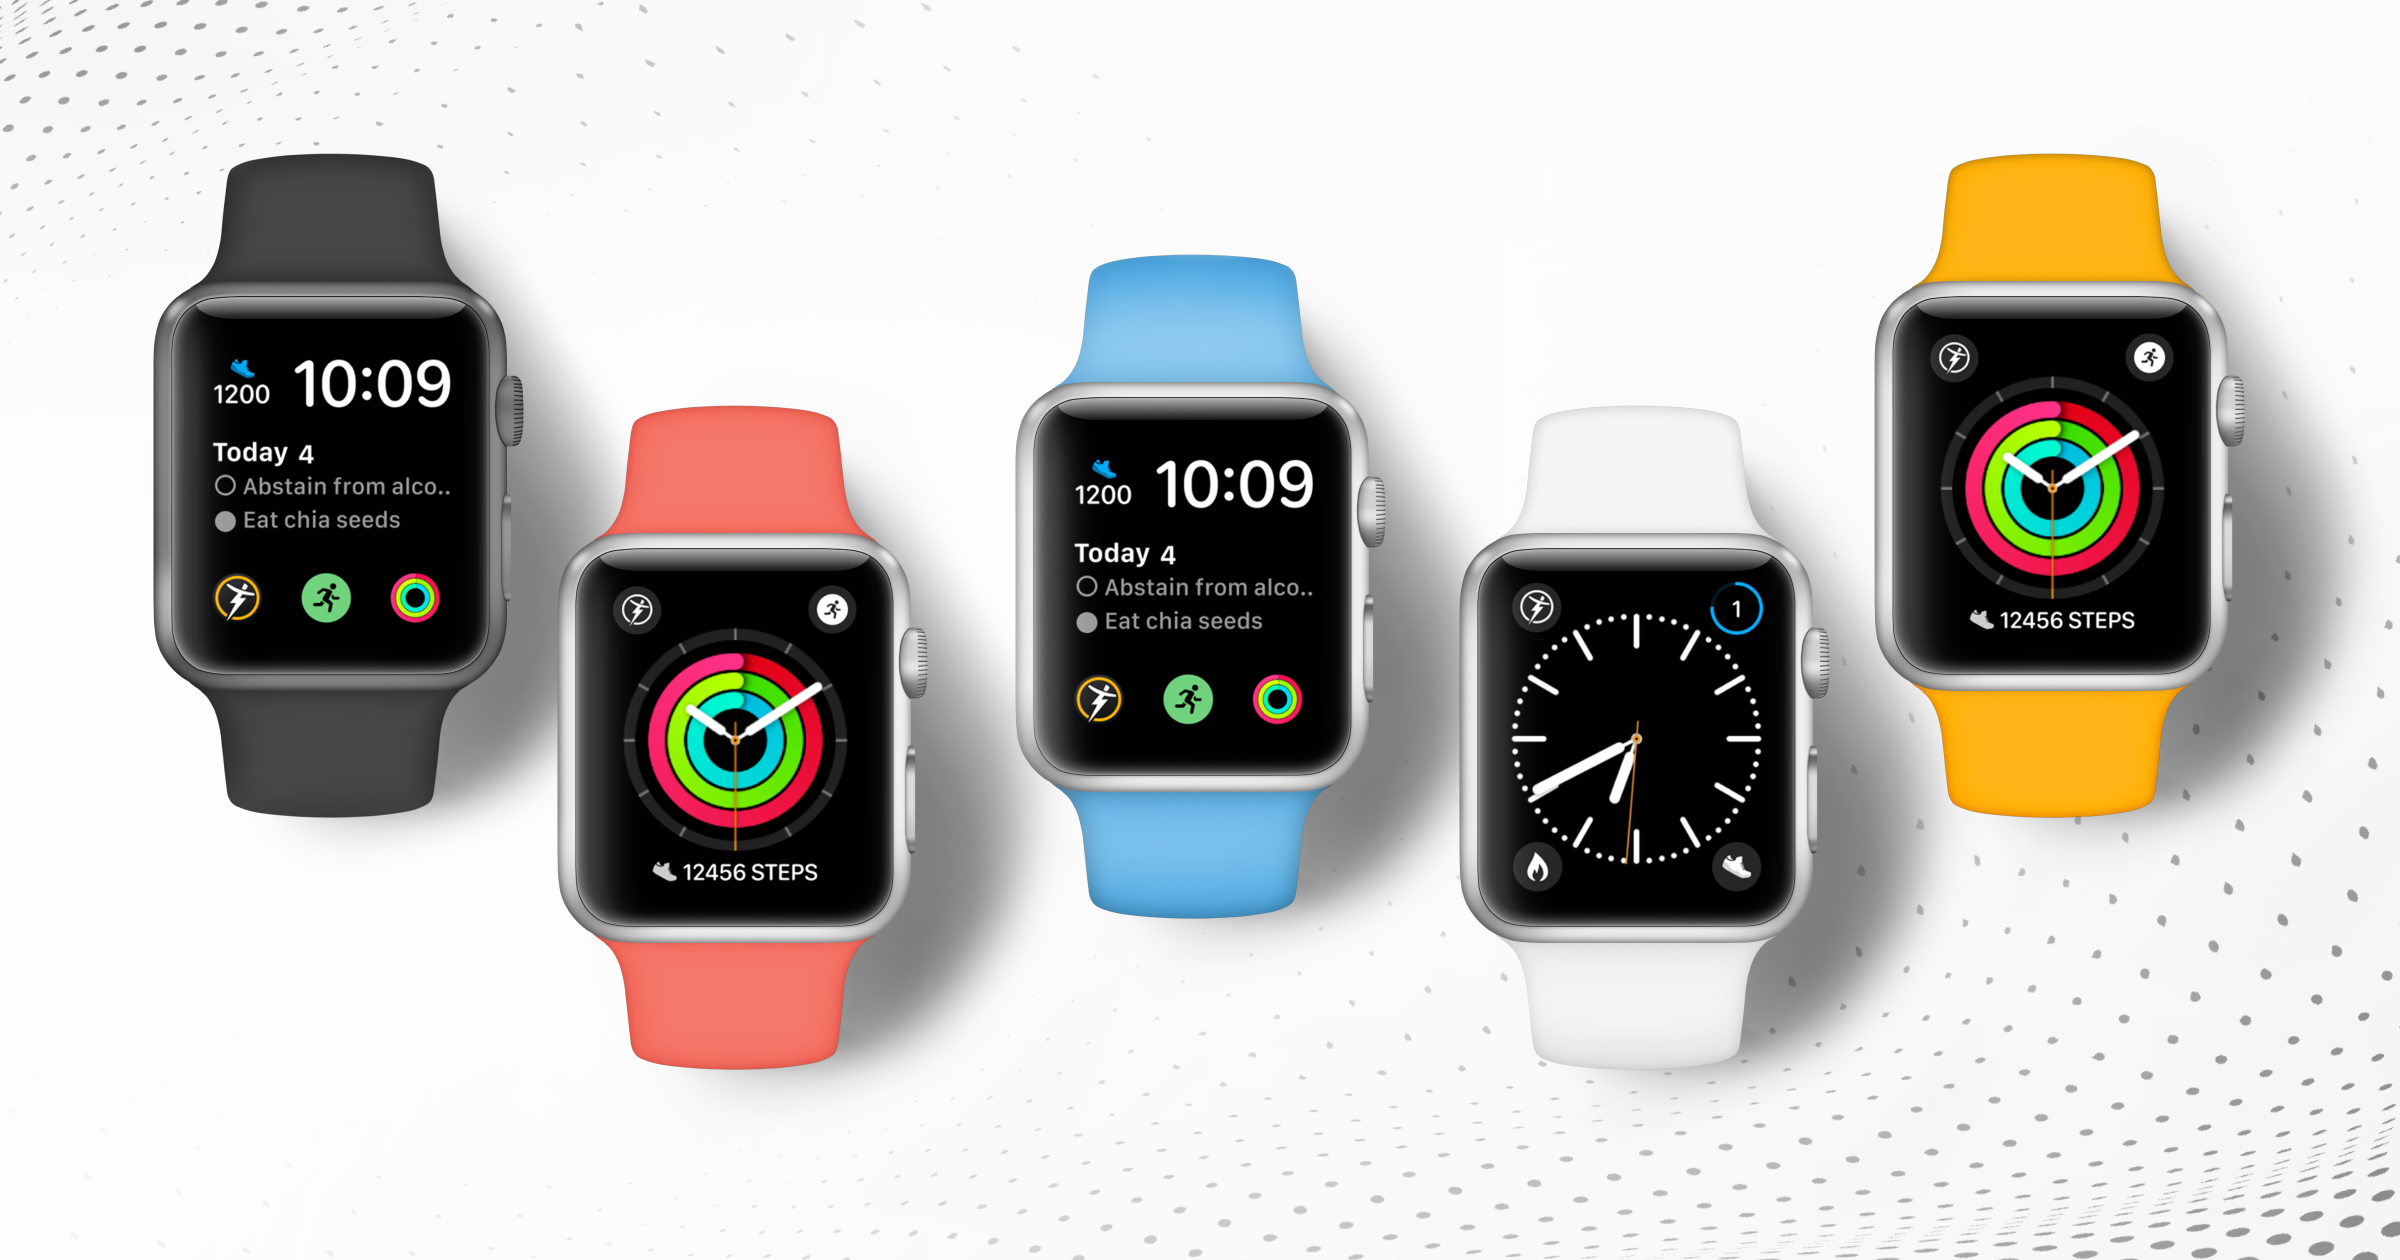 Apple Watch App powered by Trainerize - Complications and Preset Watch Faces